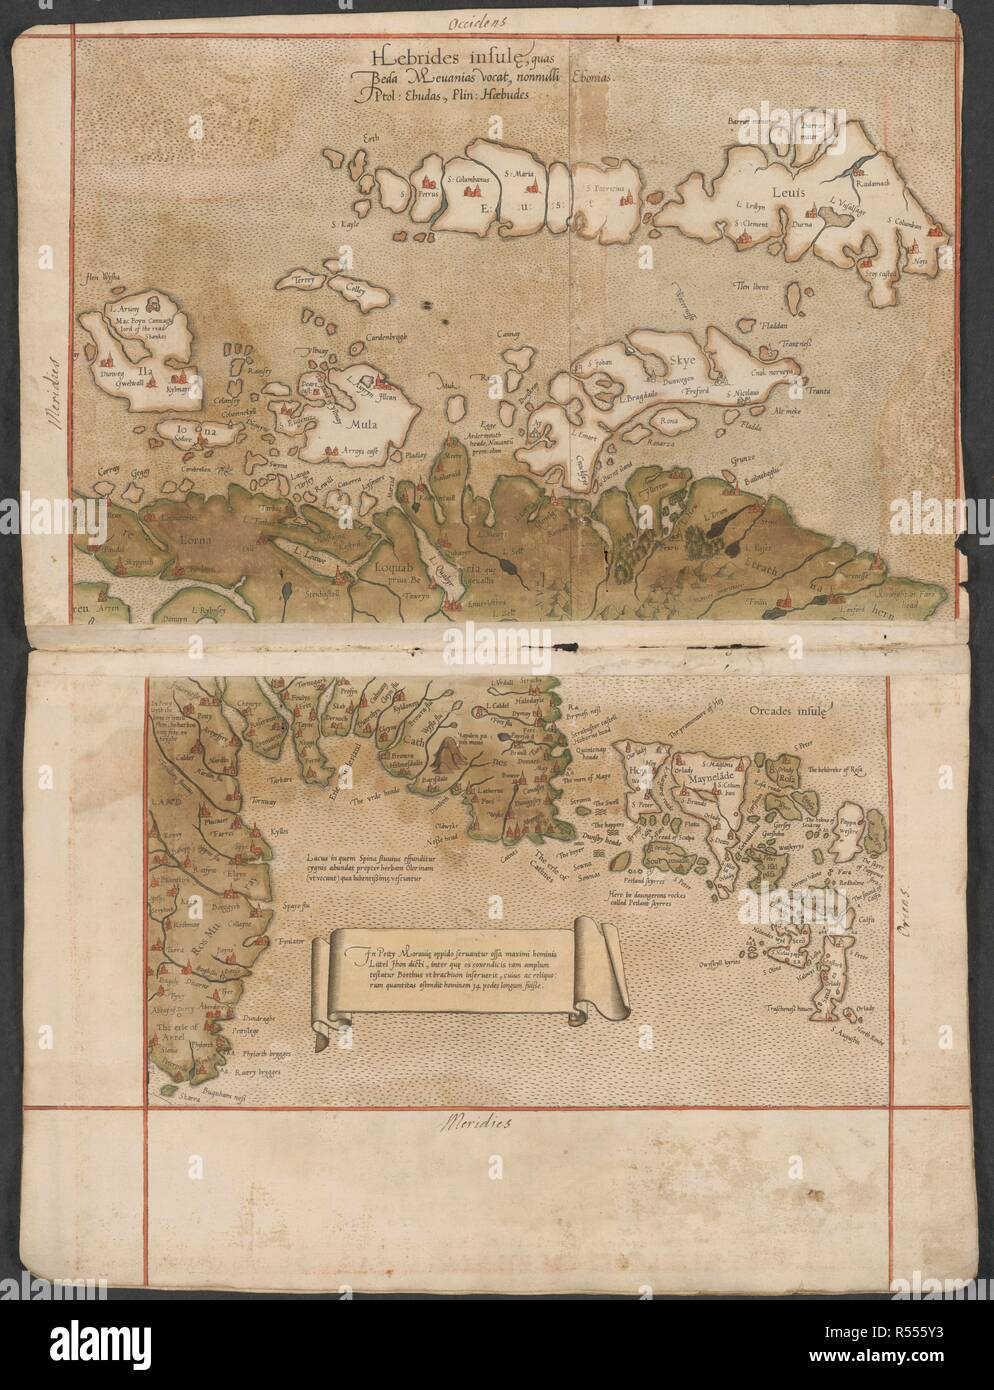 1570-1572. Map of the Hebrides. Image taken from The Mercator atlas of  Europe. Originally published/produced in 1570-1572. . Source:  Maps.C.29.c.13, 11.